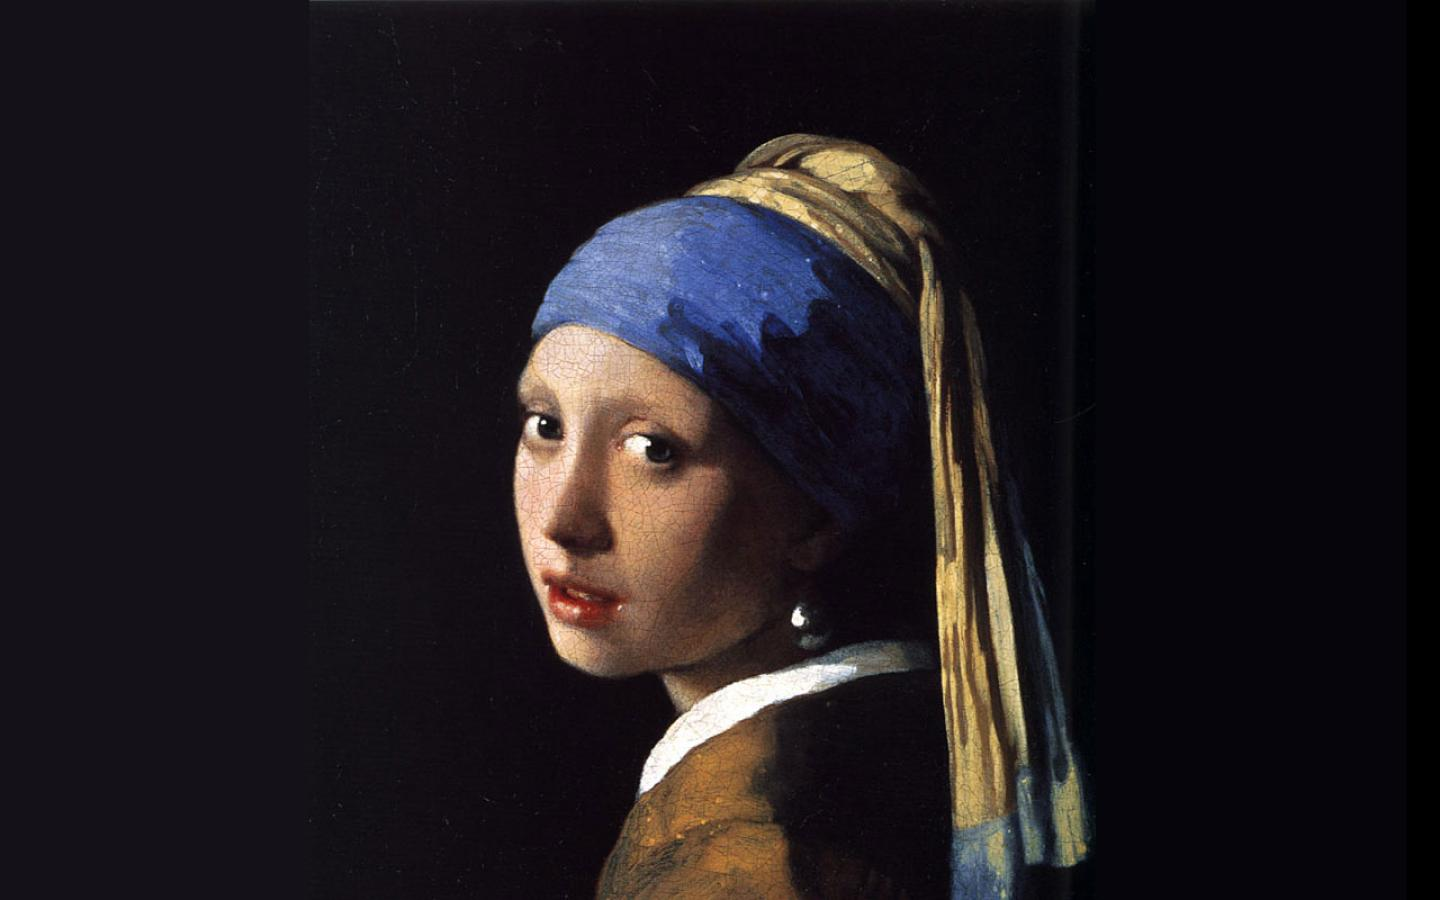 Johannes vermeer girl with a pearl earring 1440x900 wallpaper 4